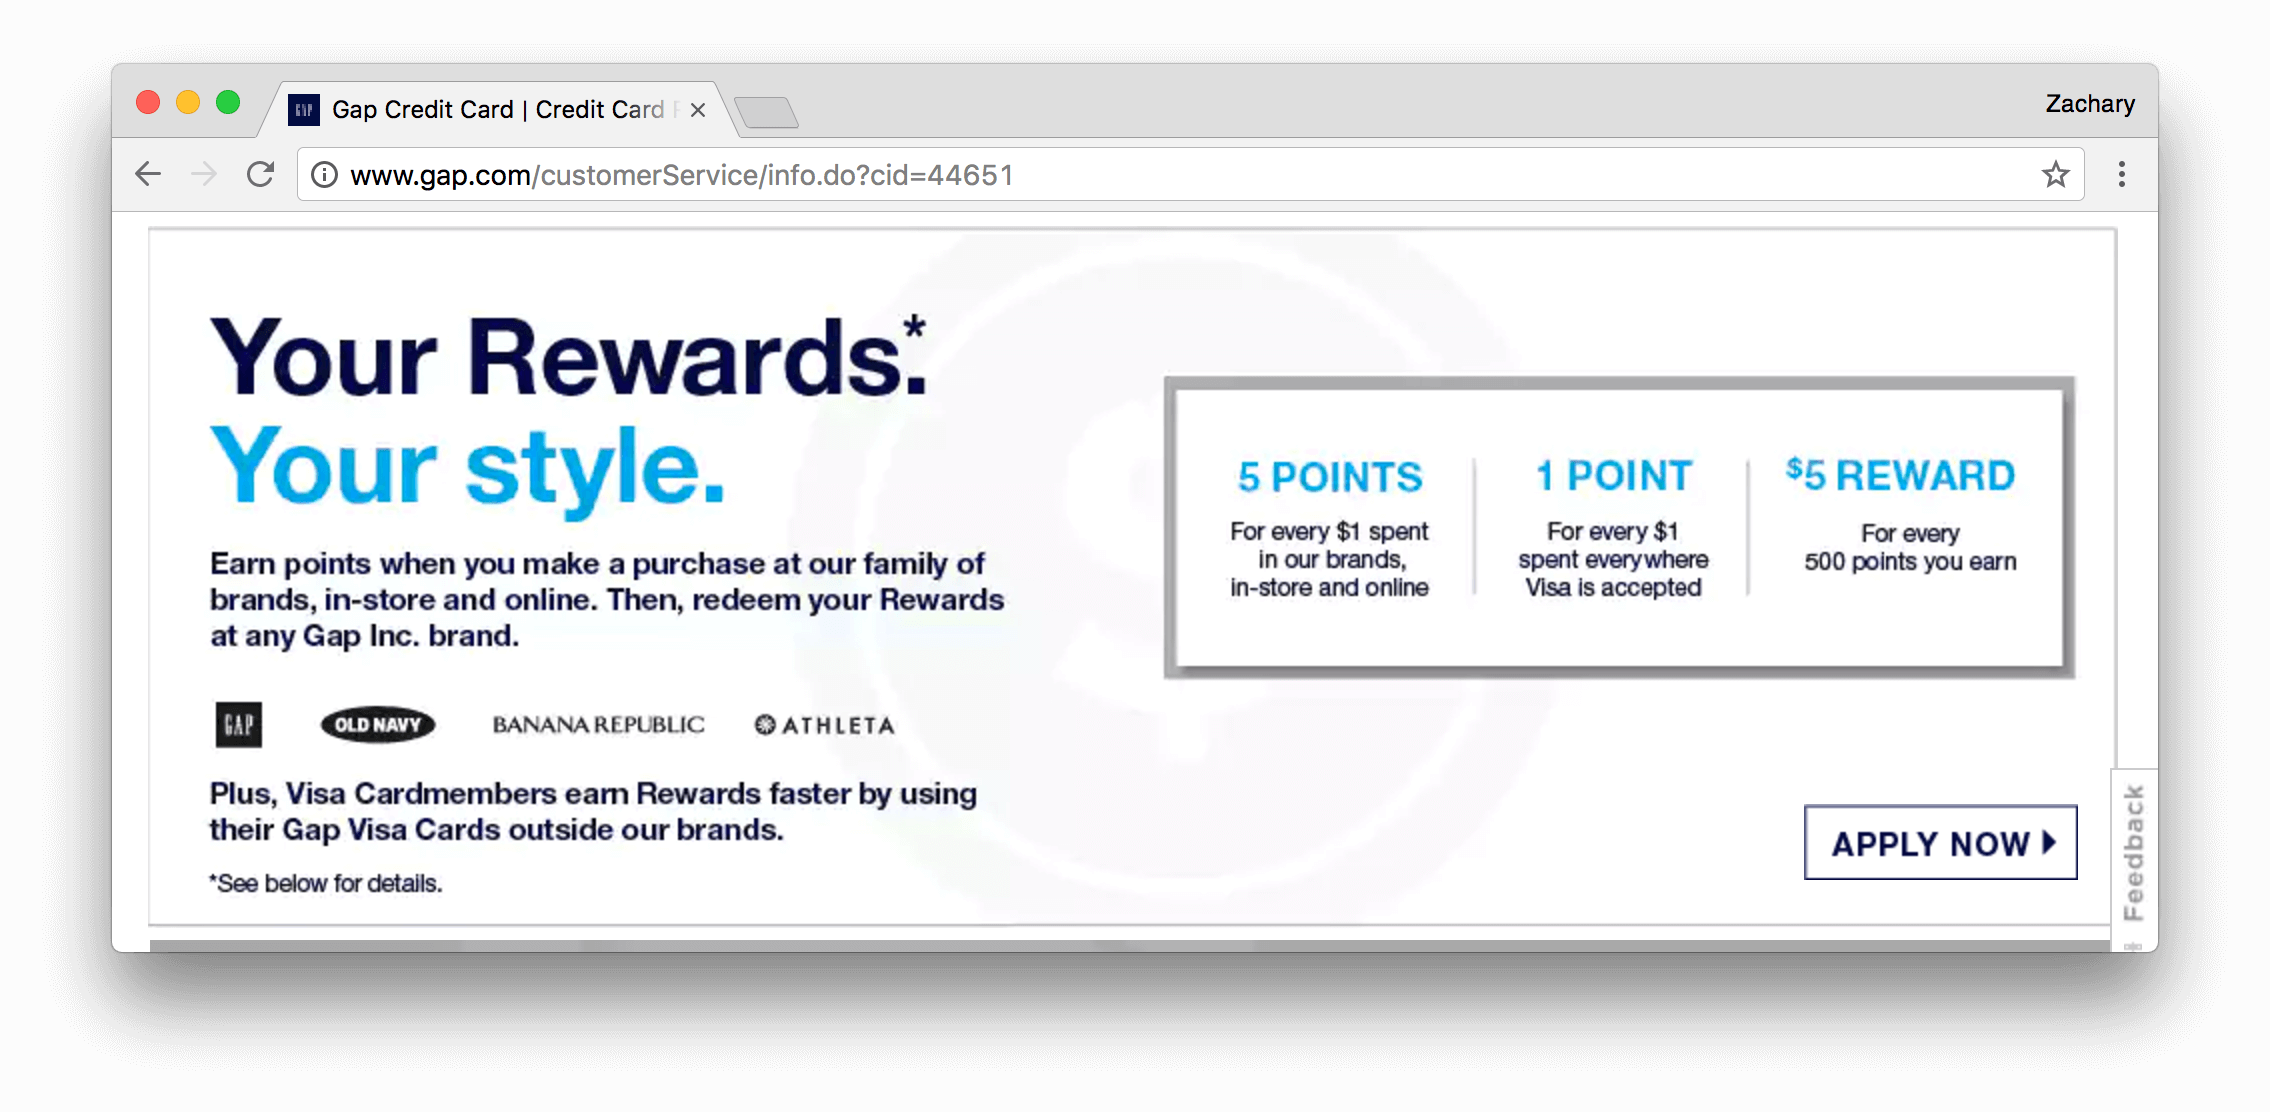 Gap Visa Card points earning and redemption